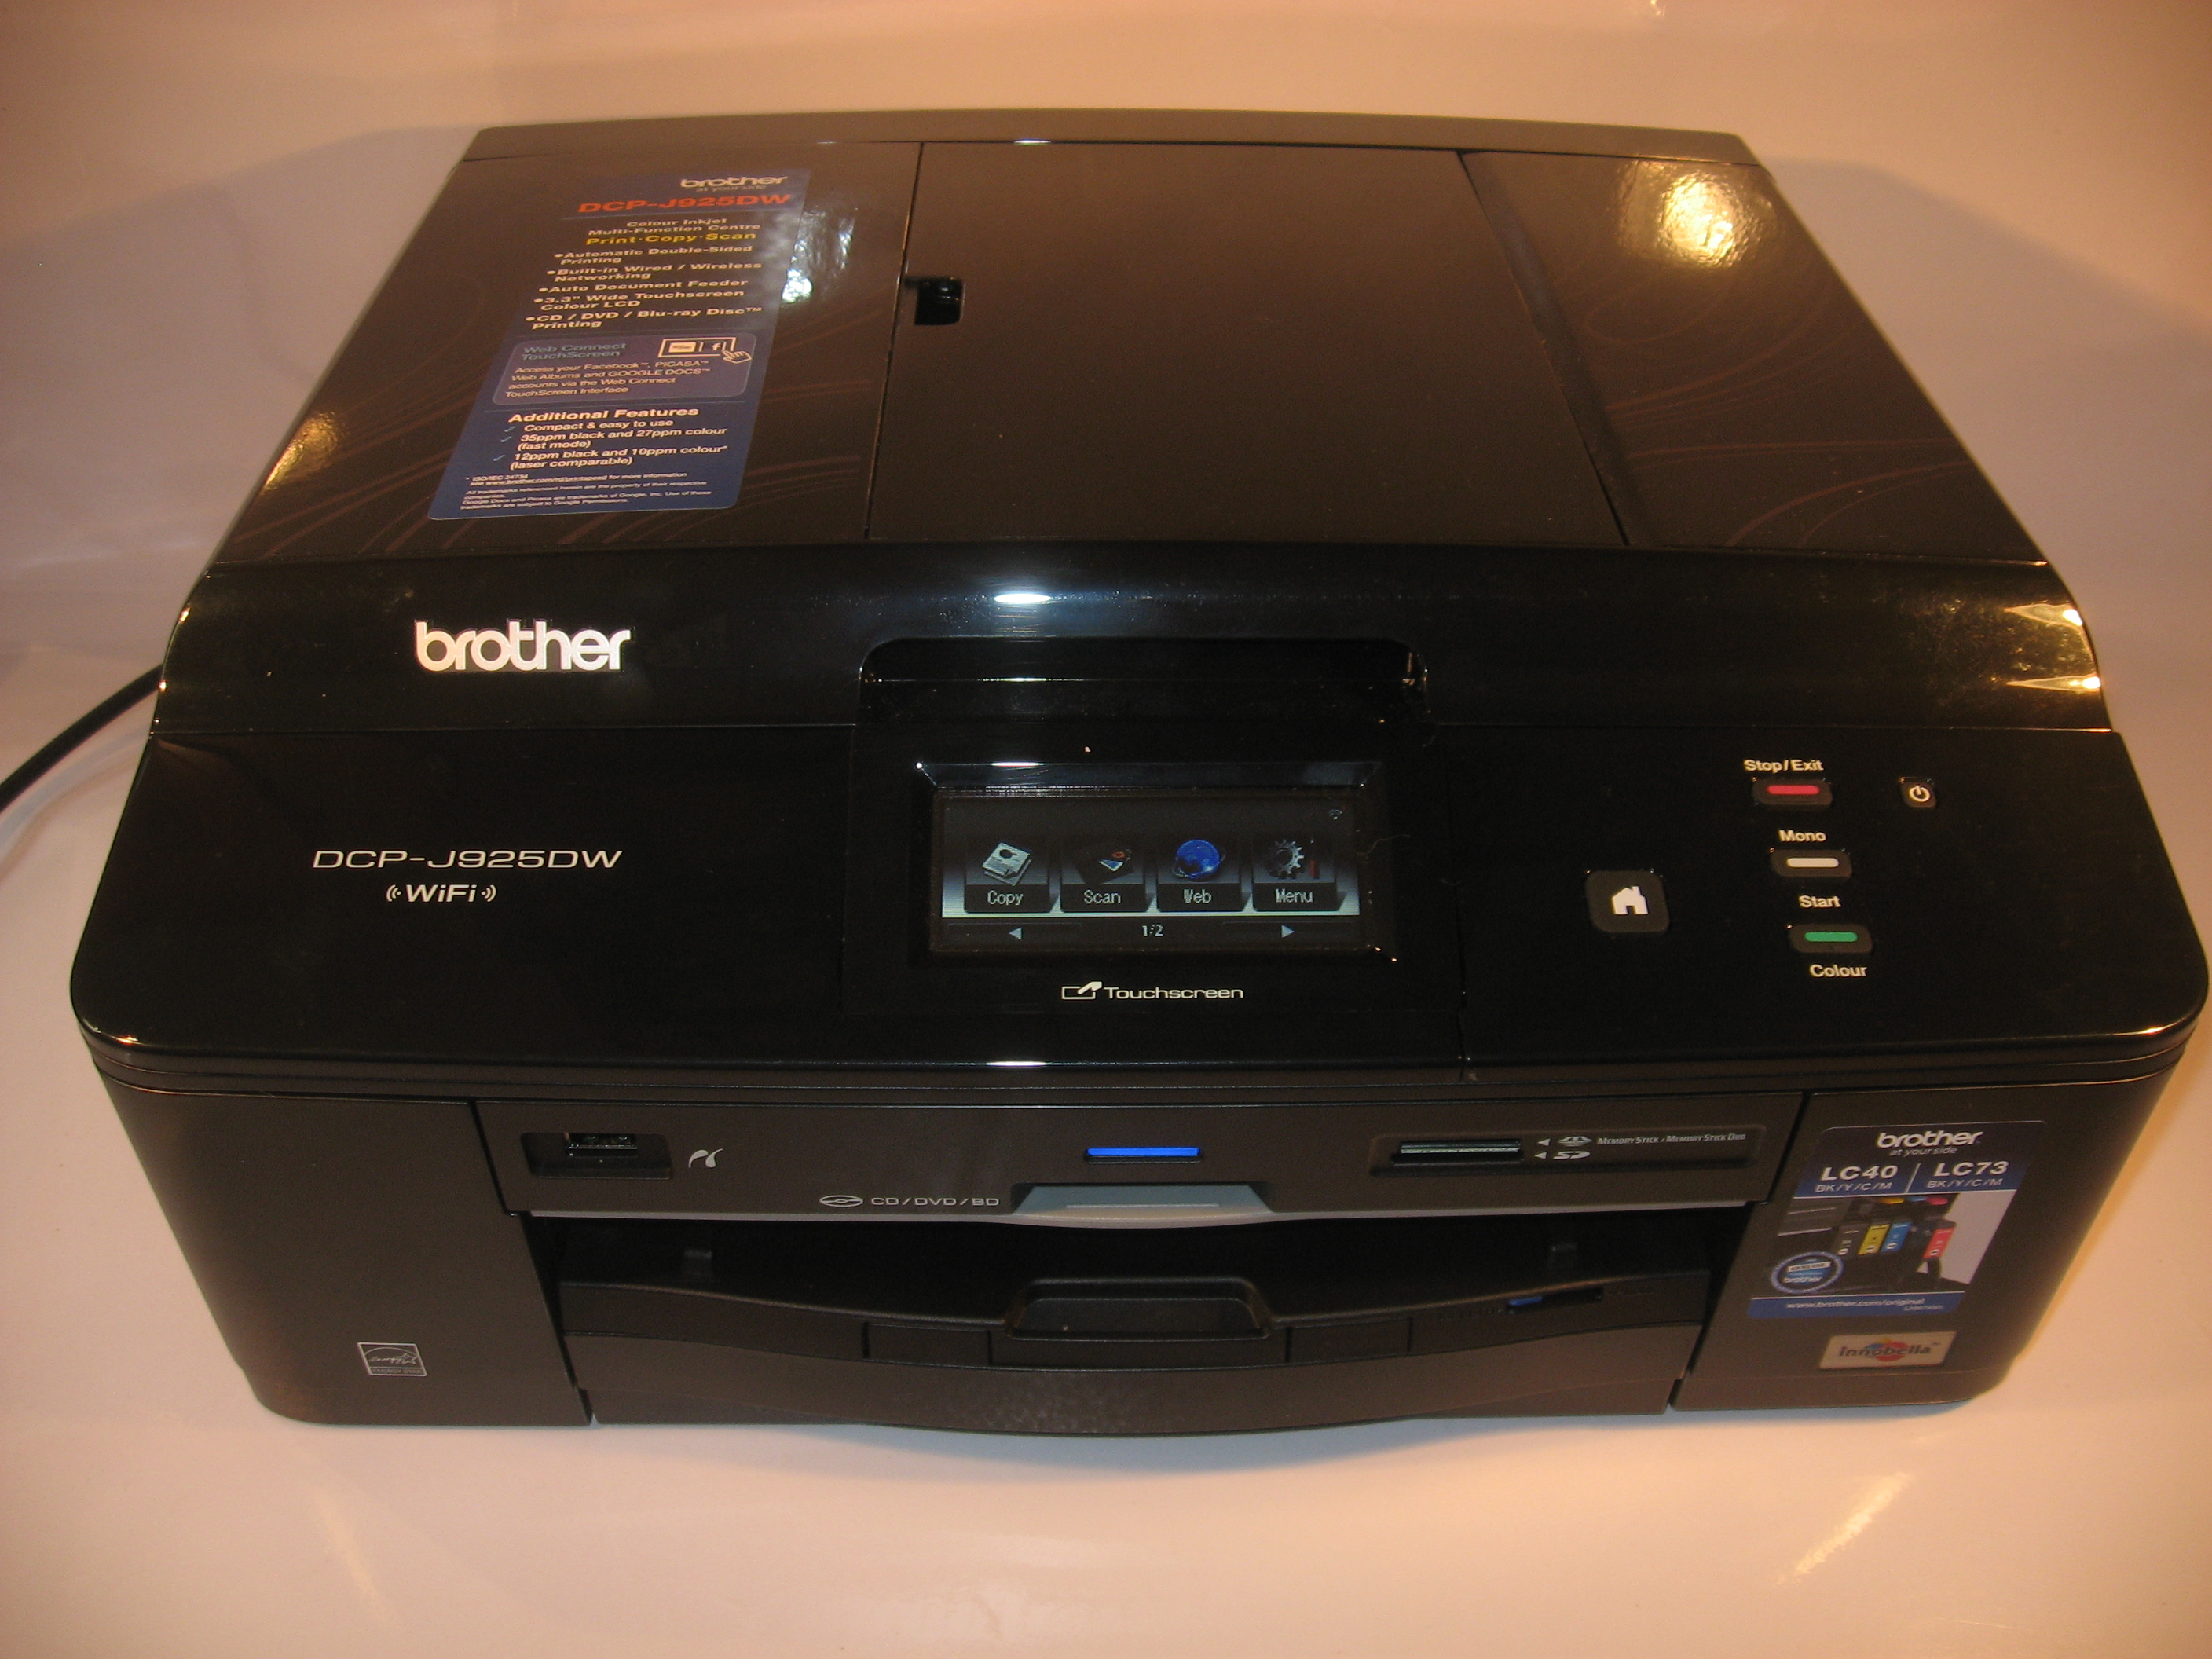 Product Review–Brother DCP-J925DW multifunction printer